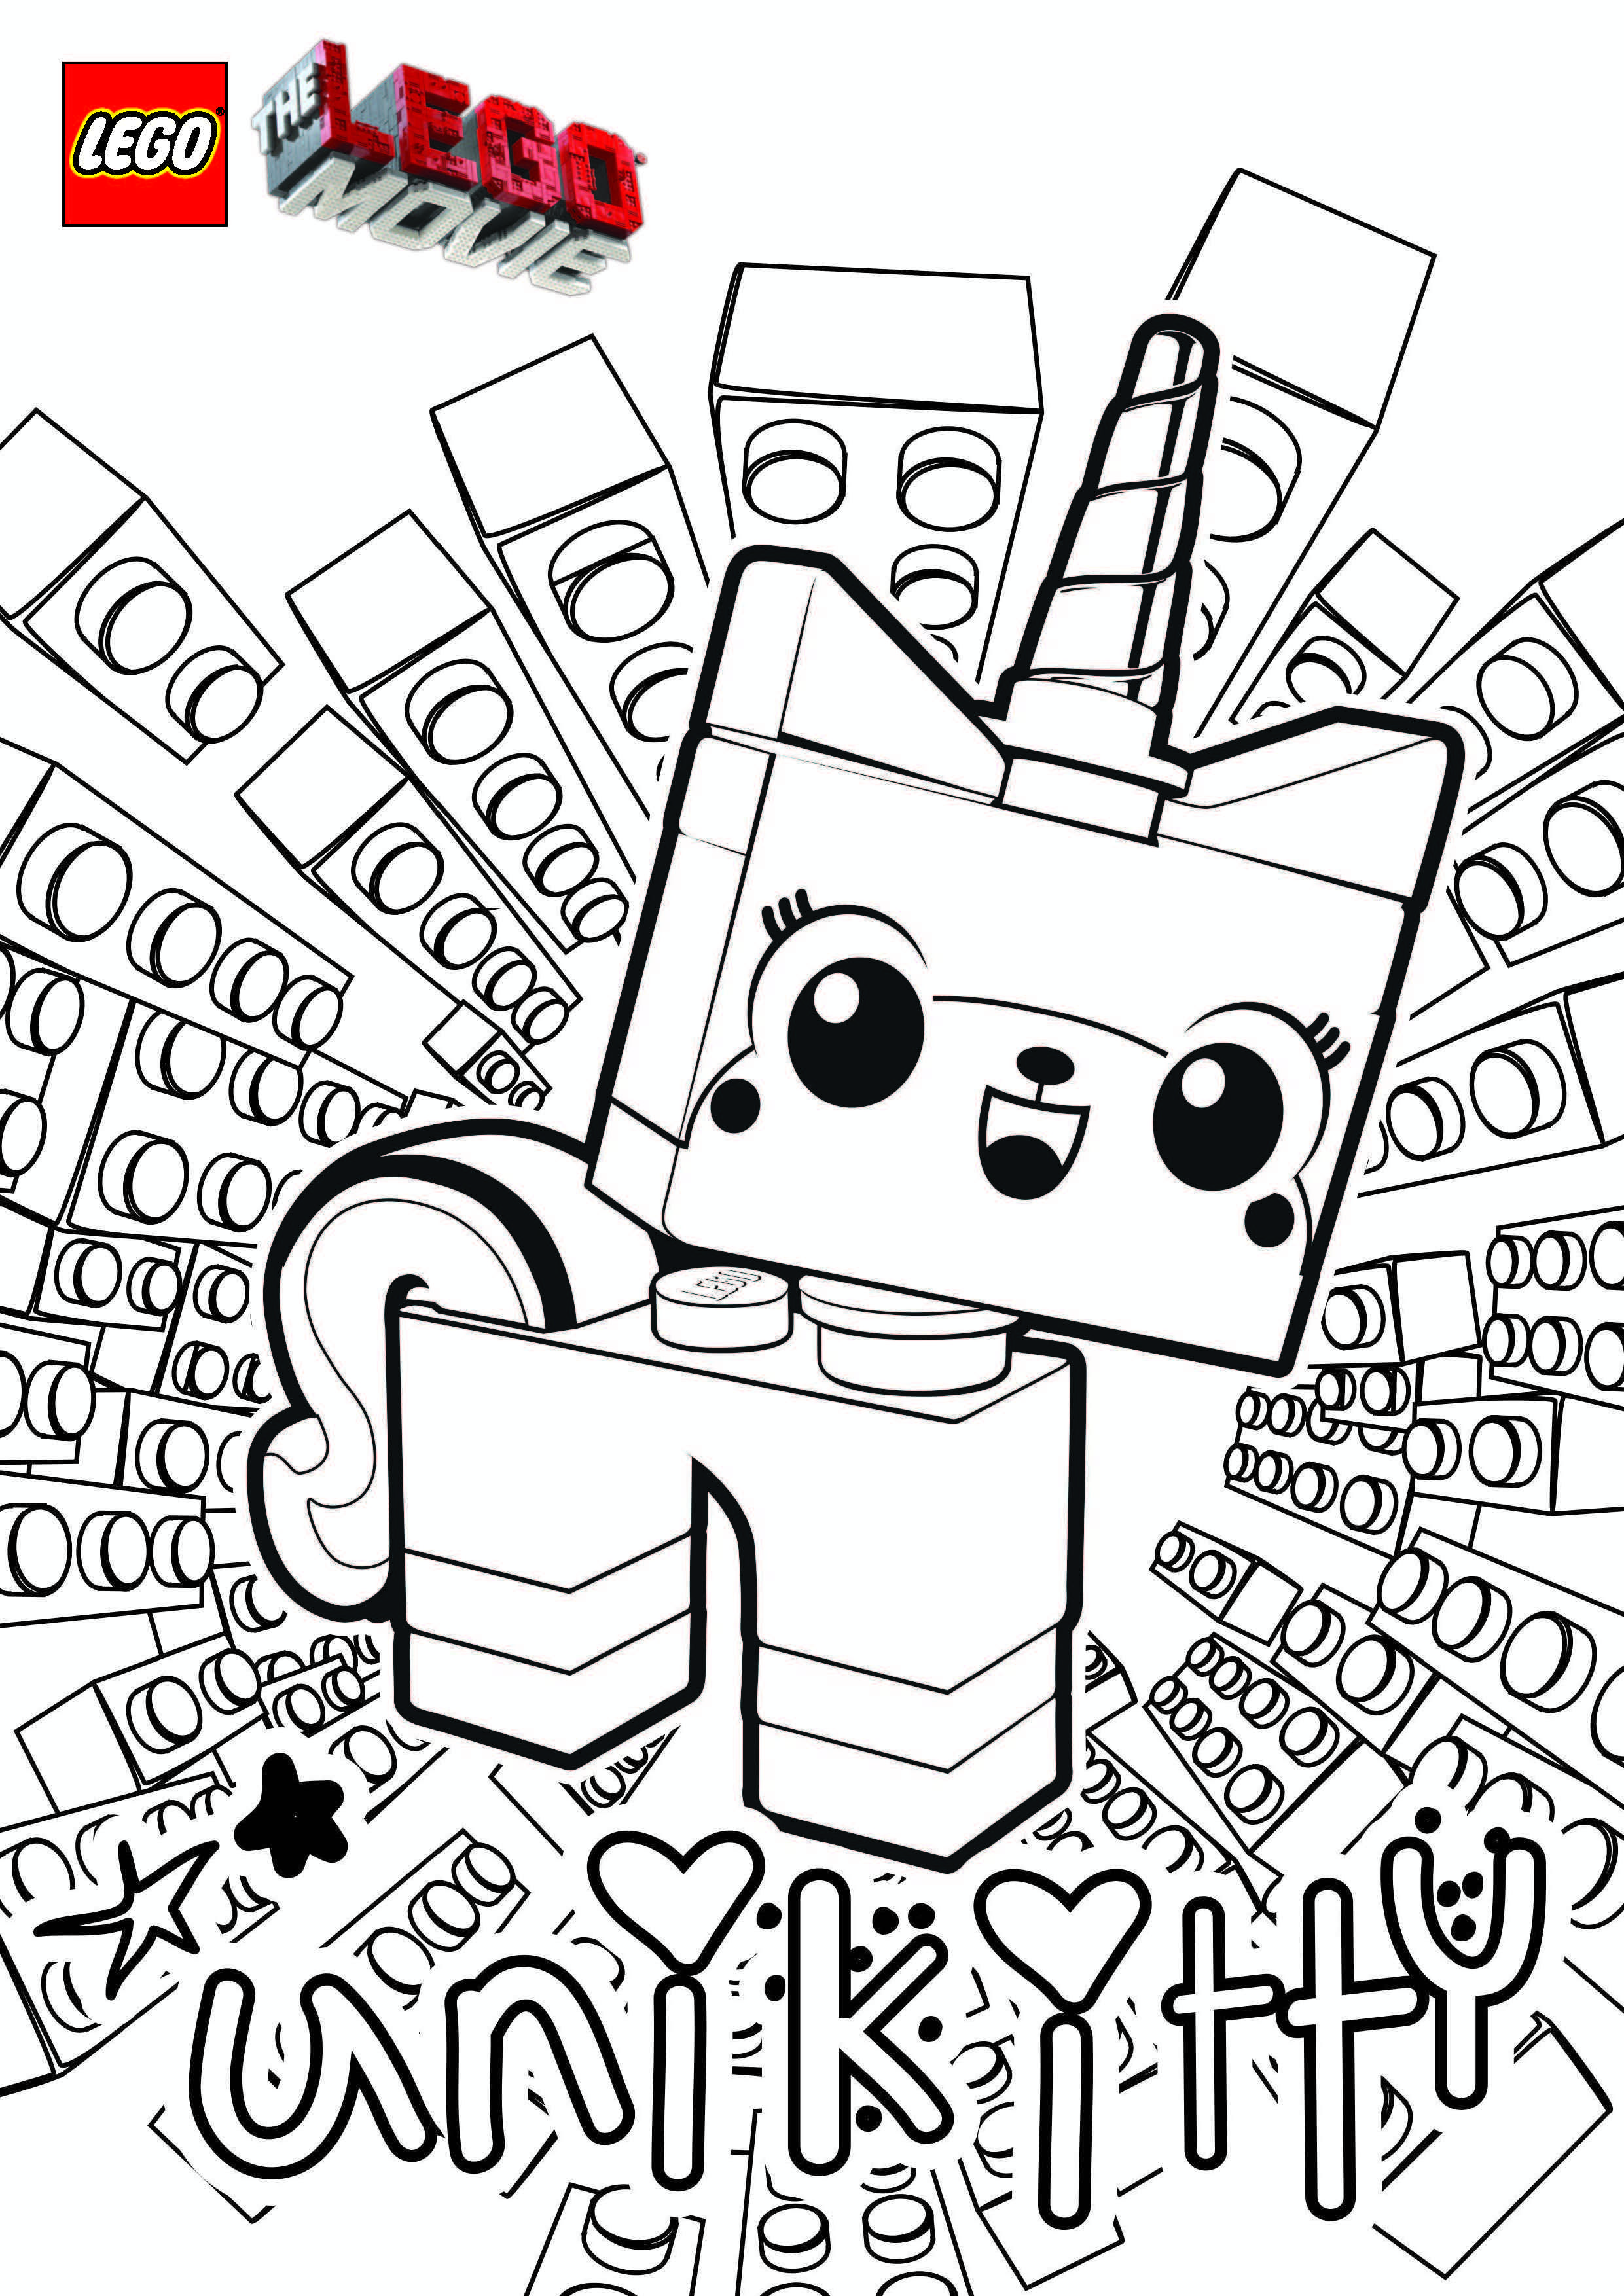 Princess unikitty coloring pages lego movie party ideas goody bags or party activity lego coloring